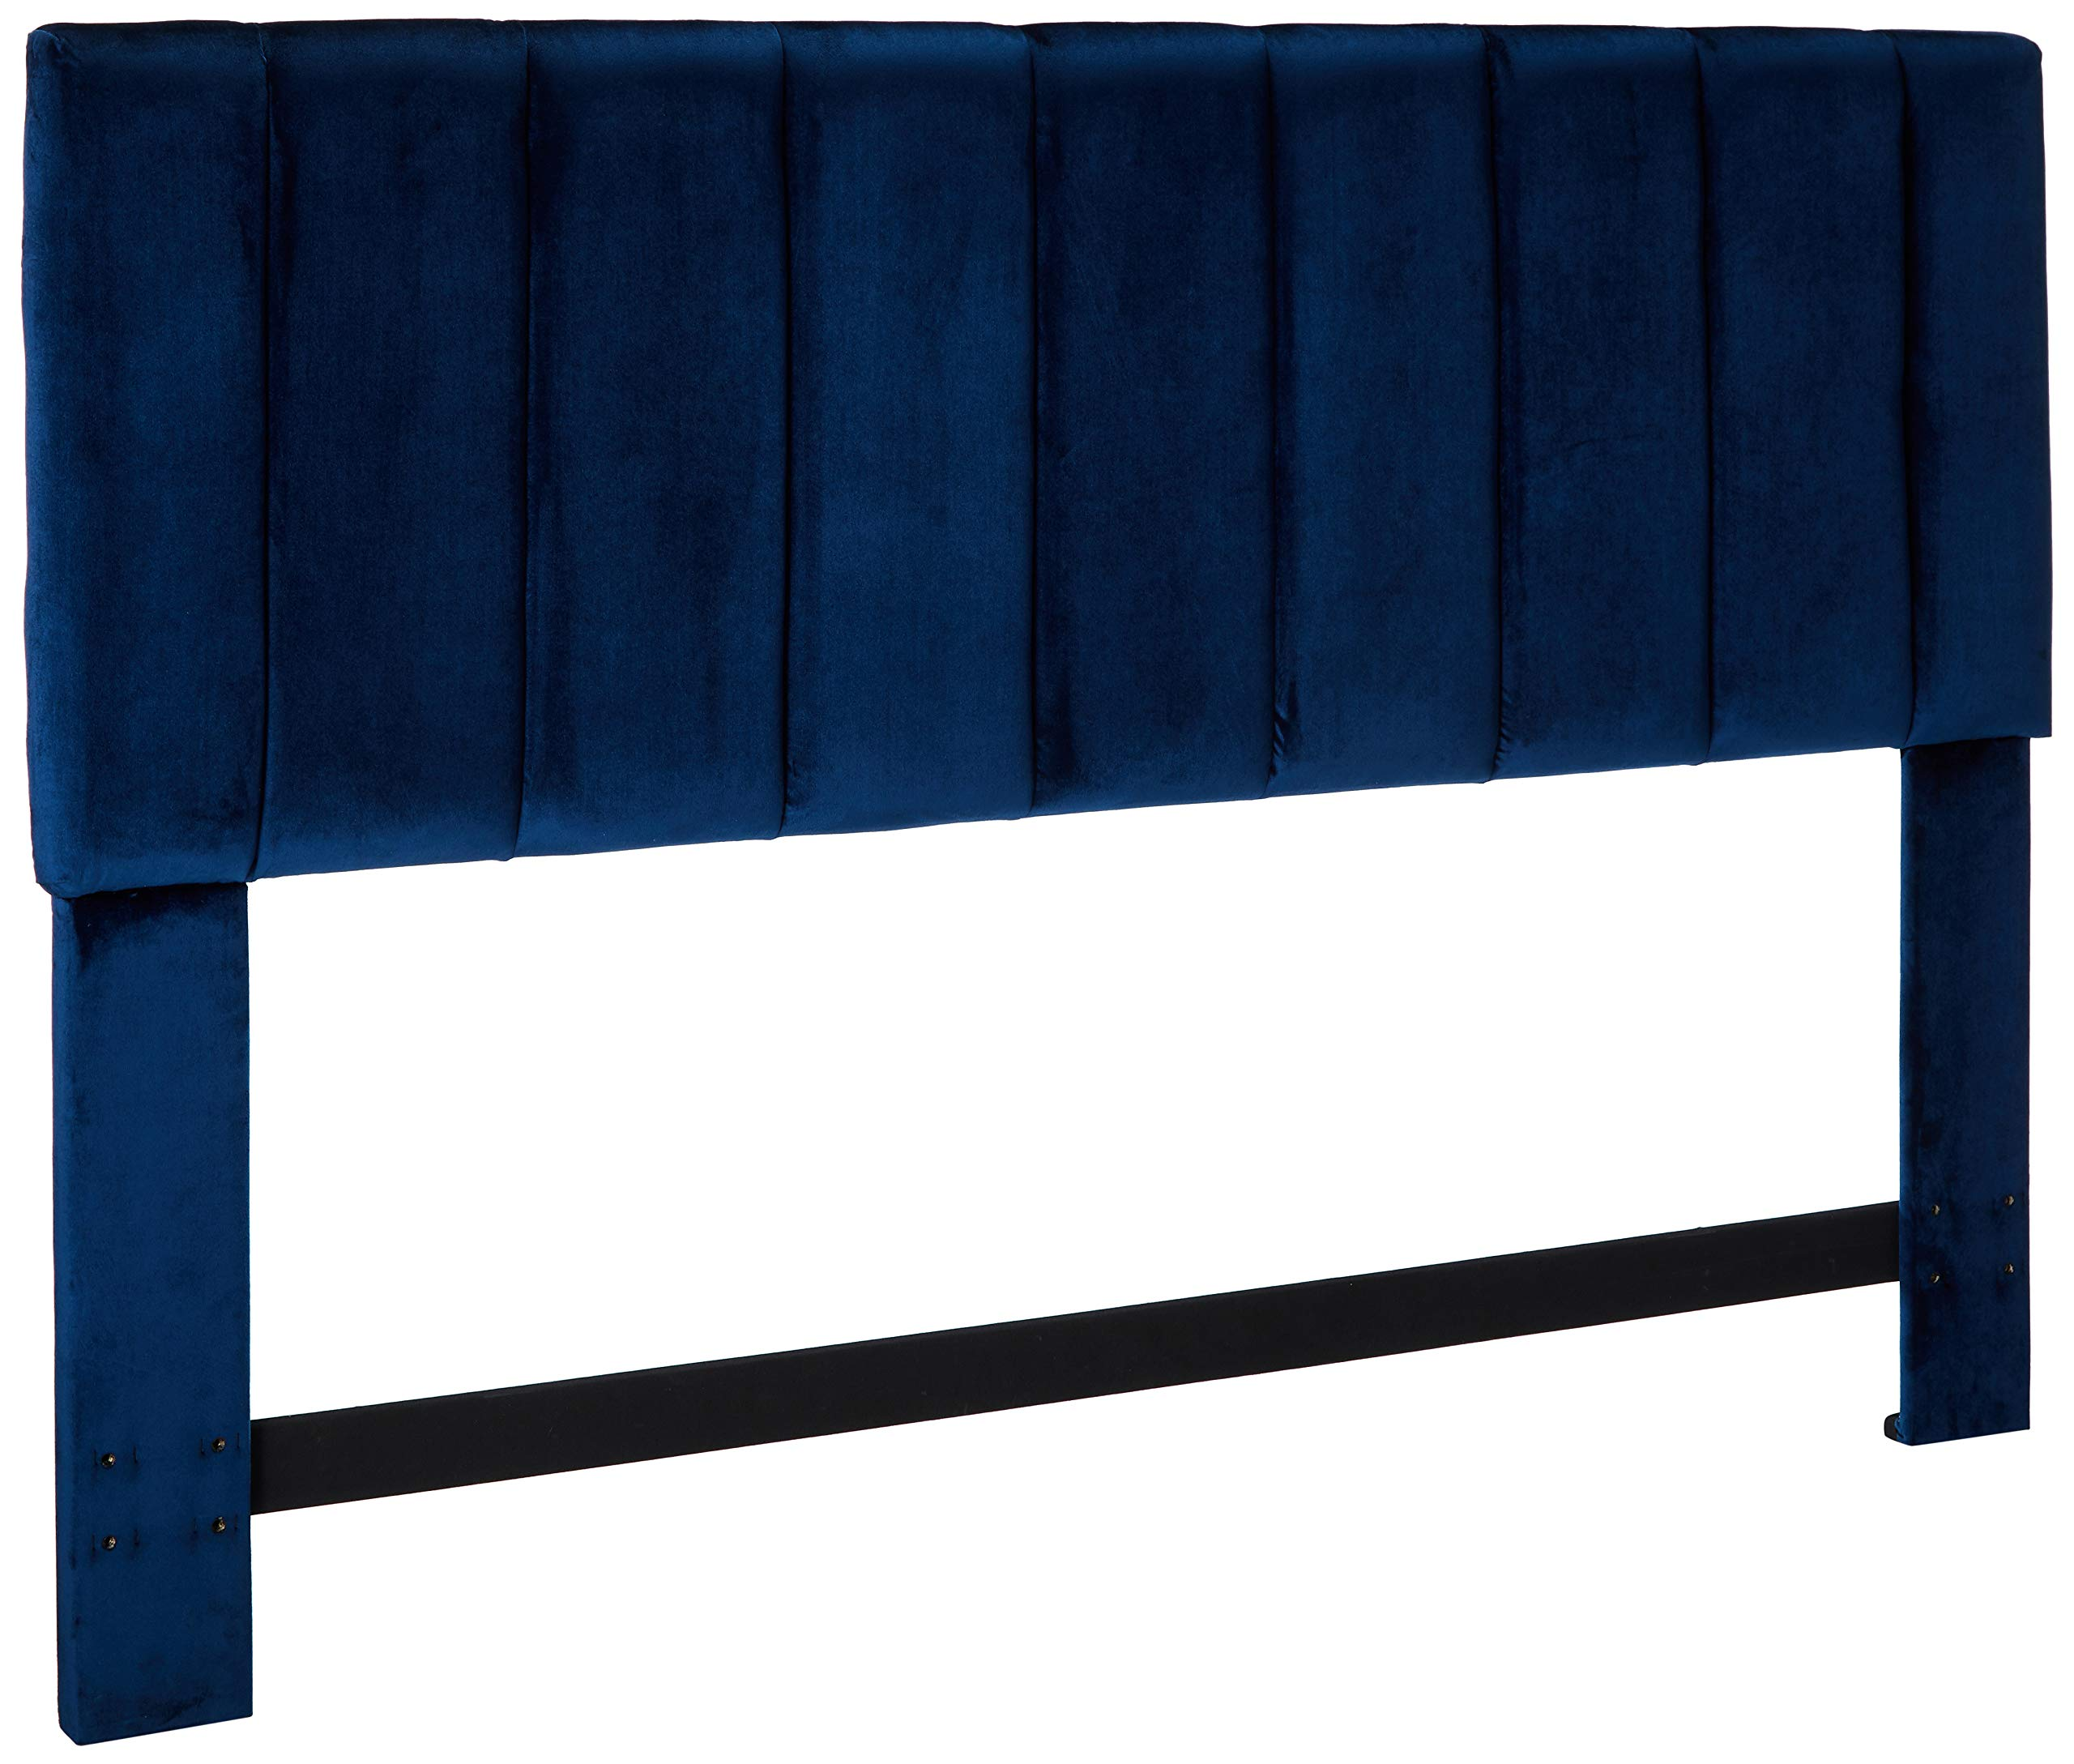 Iconic Home FHB9047-AN Uriella Headboard Velvet Upholstered Vertical Striped Modern Transitional, King, Navy by Iconic Home